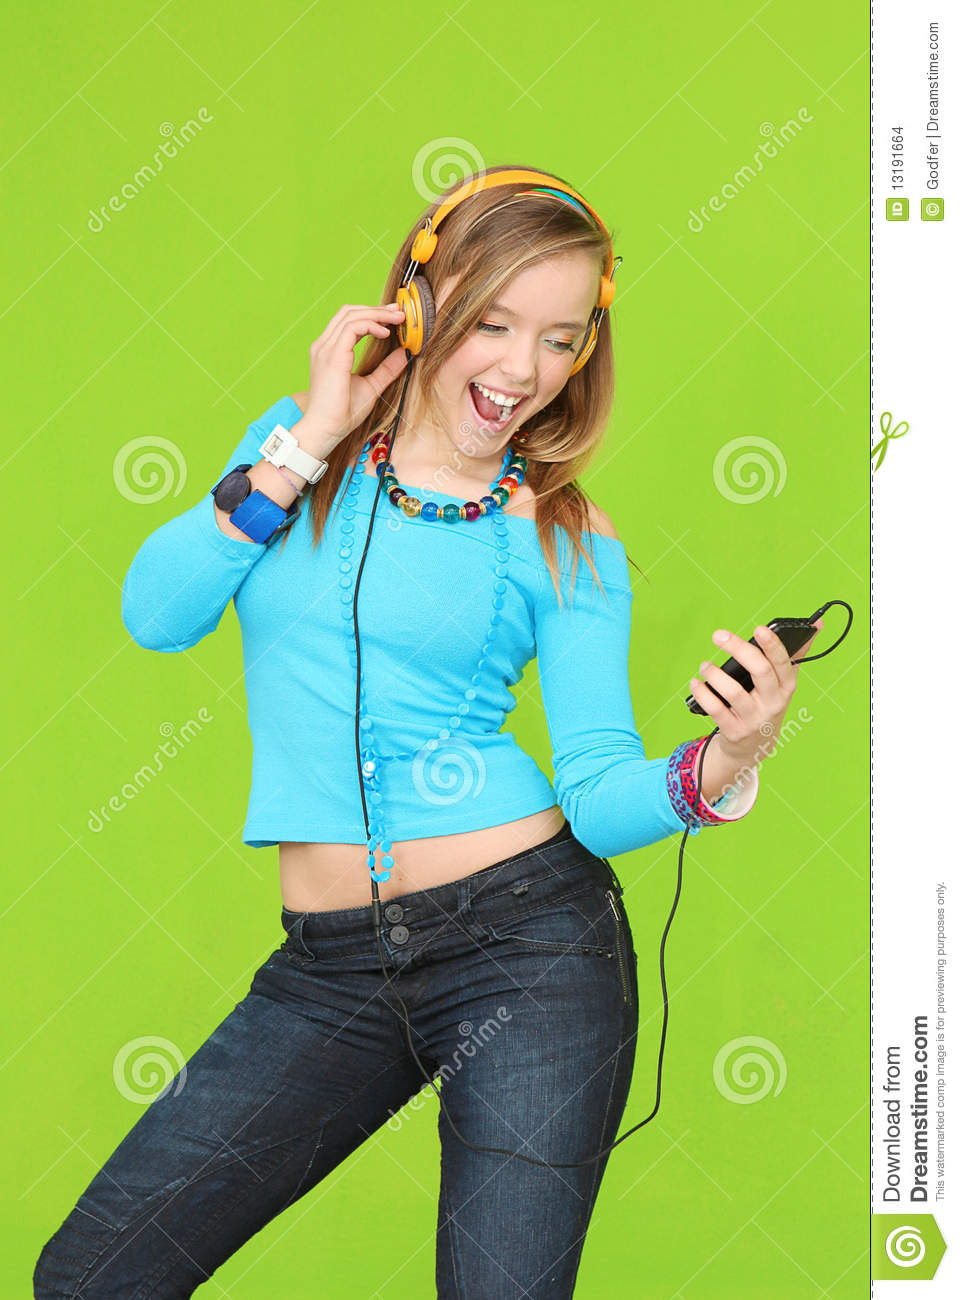 Girl Listening To Music Clipart